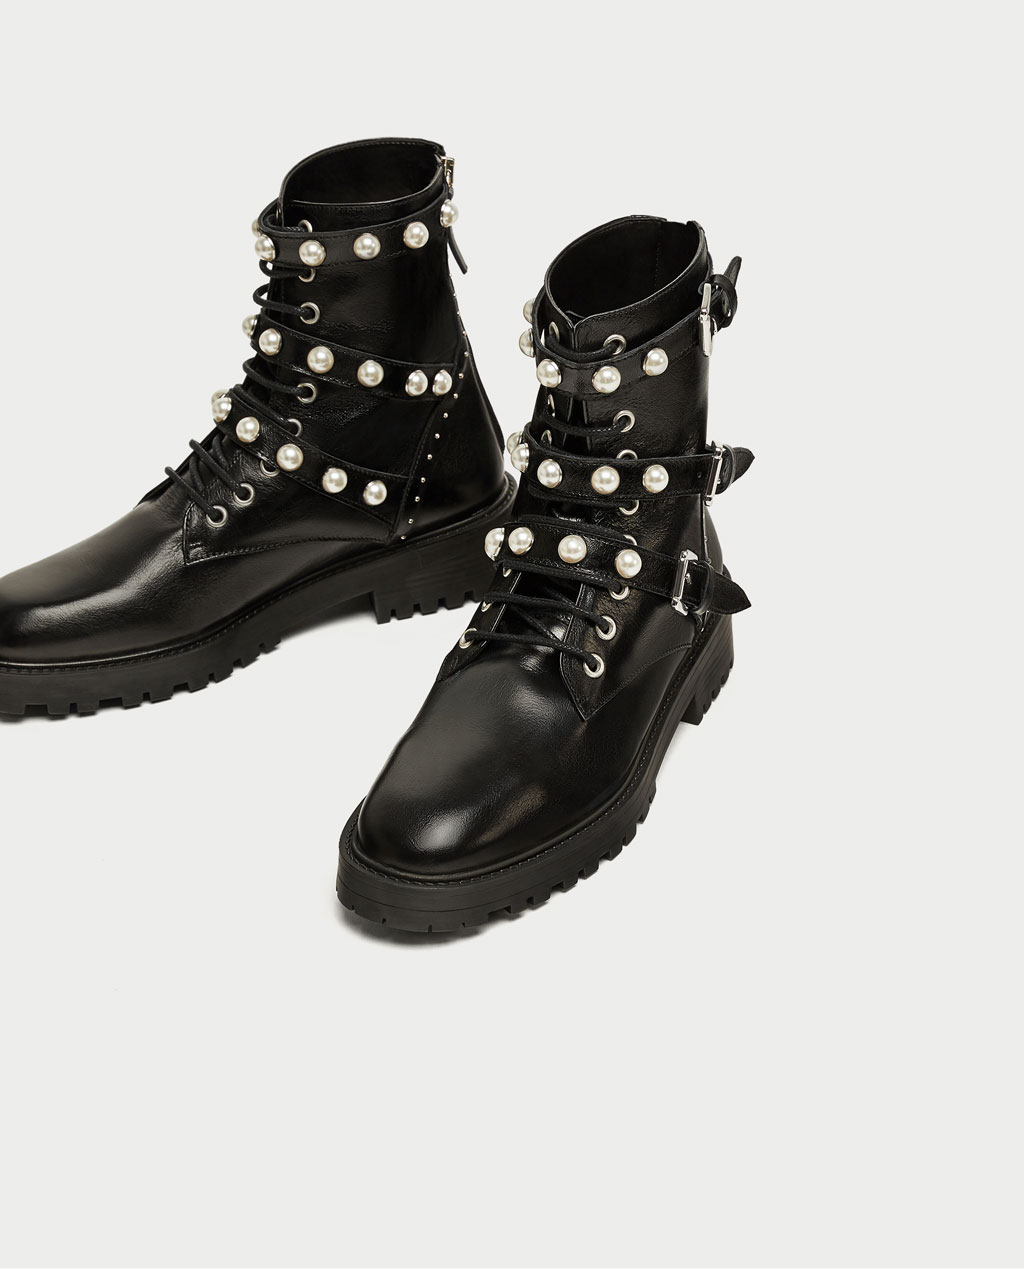 https://www.zara.com/ca/en/leather-ankle-boots-with-faux-pearls-p16133201.html?v1=5461132&v2=893503